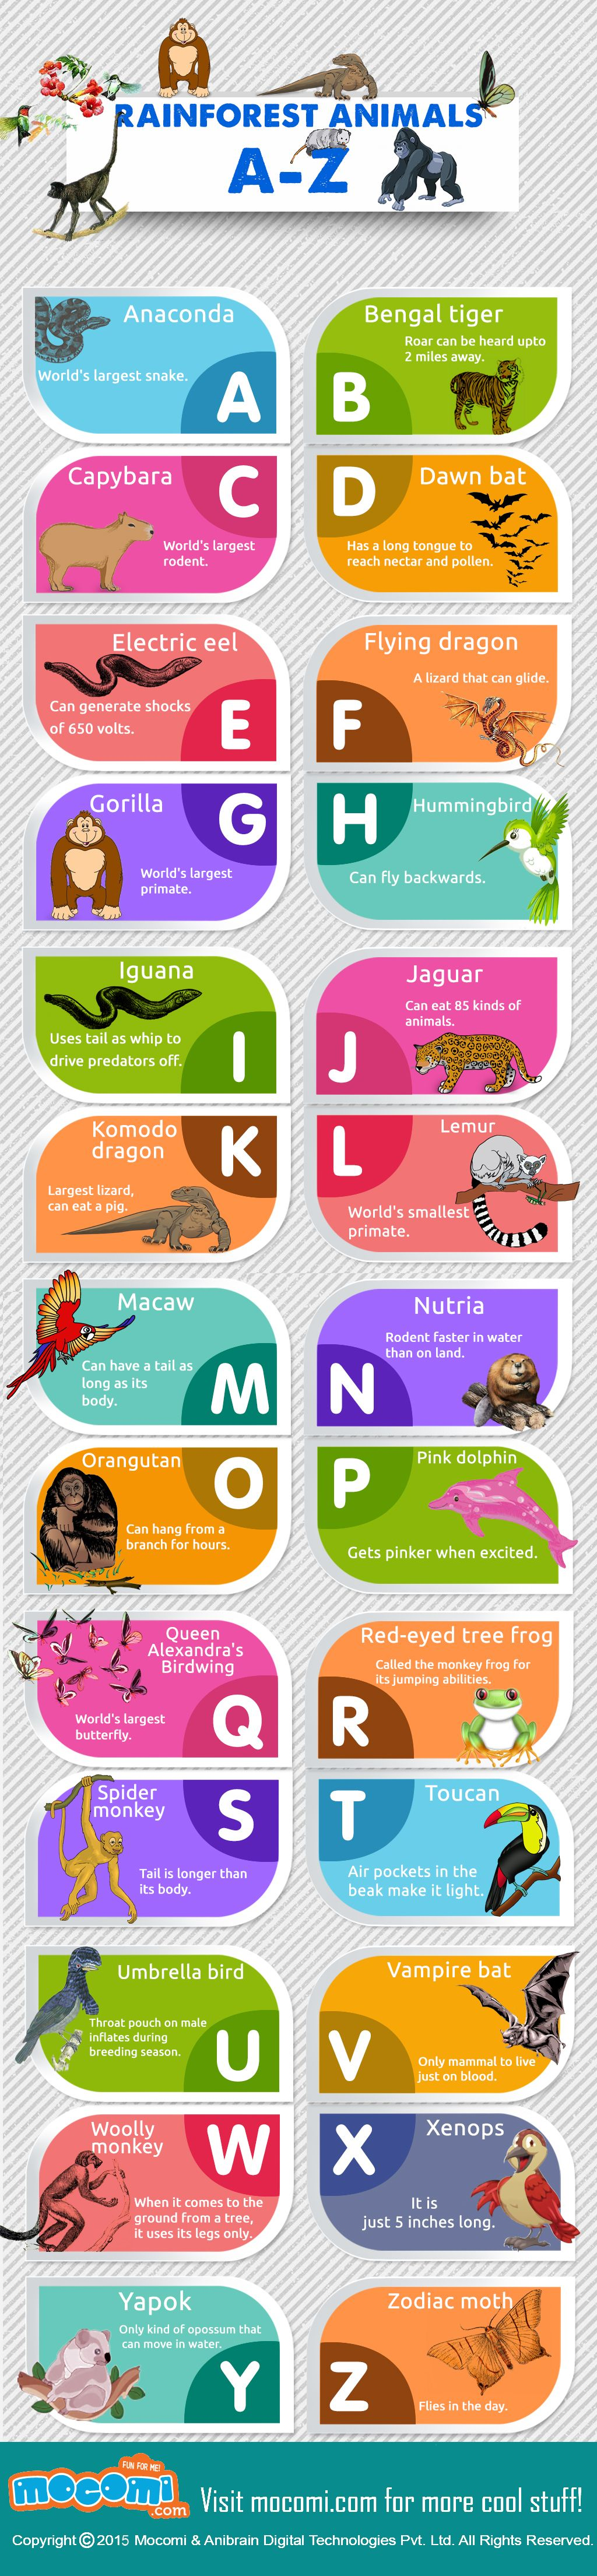 Rainforest Animals List A Z